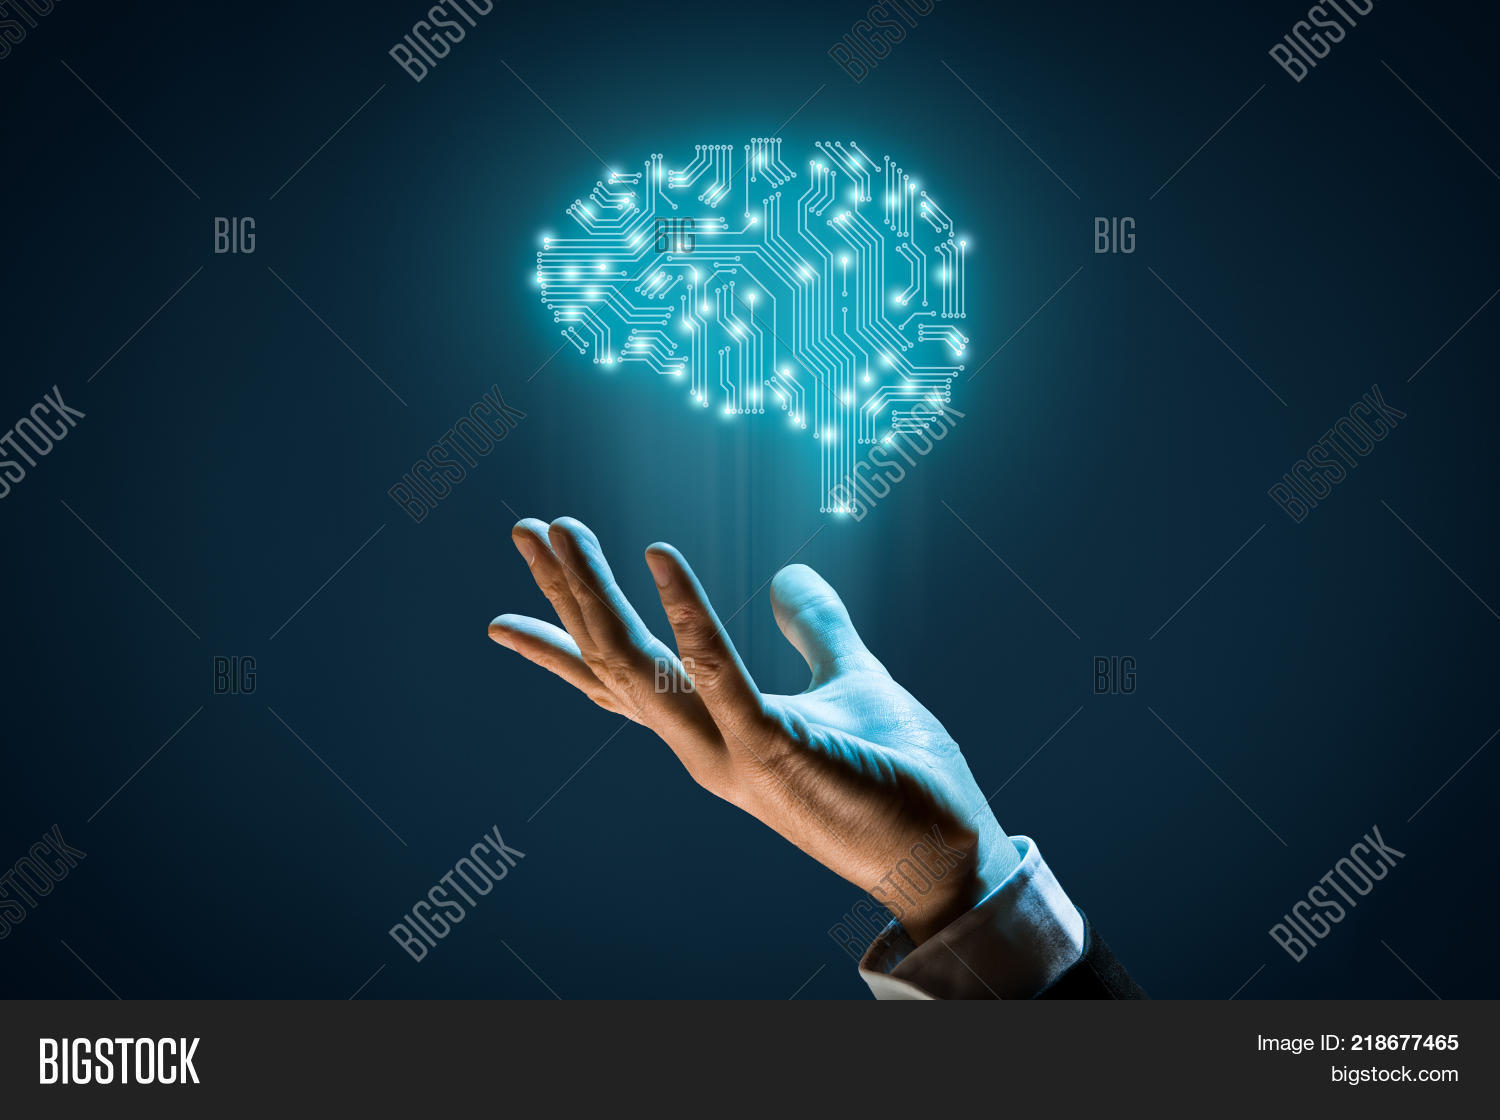 Brain Printed Circuit Image Photo Free Trial Bigstock Board Machine With Pcb Design And Businessman Representing Artificial Intelligence Ai